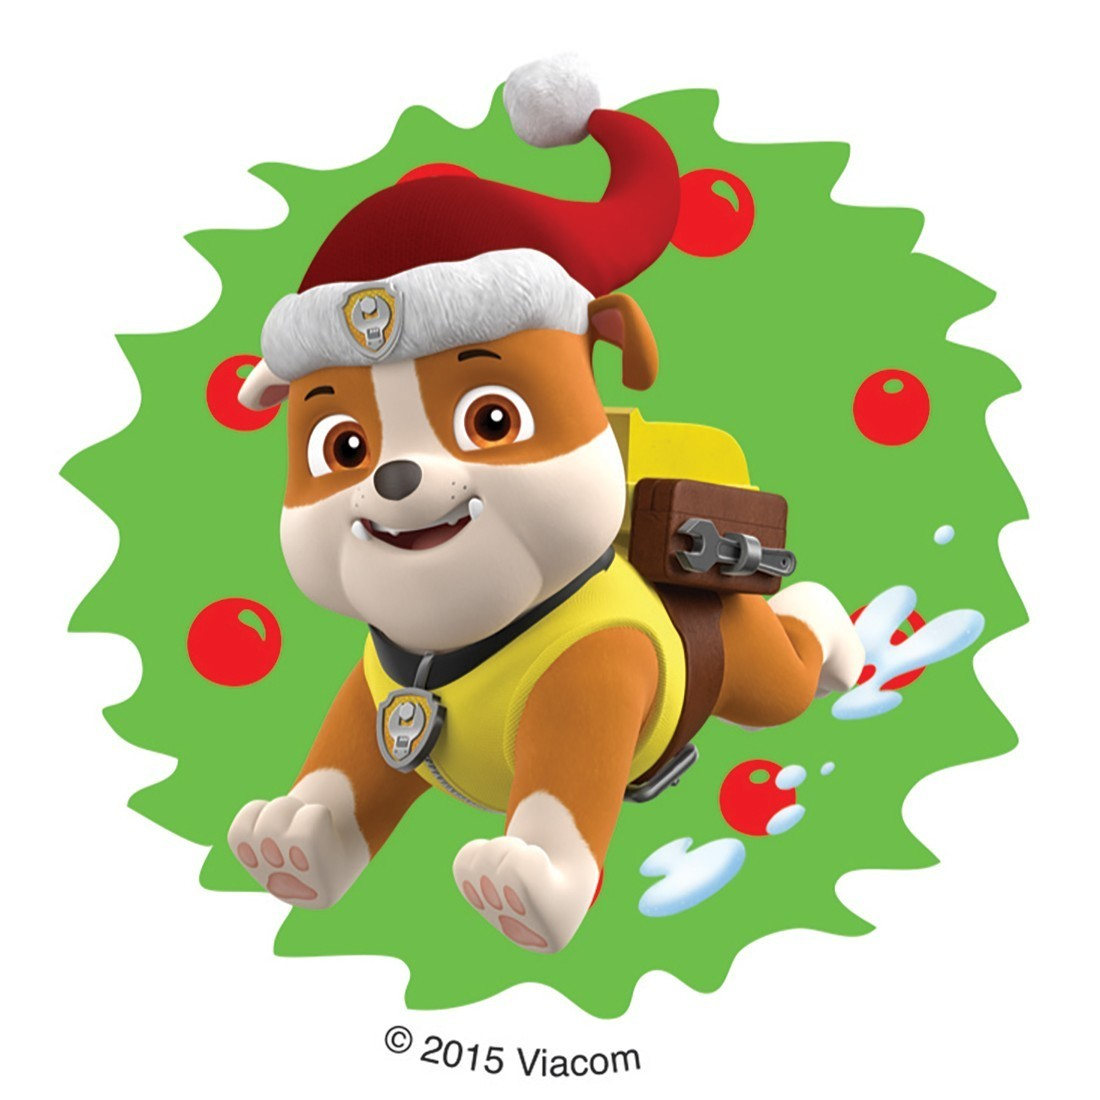 Paw Patrol Christmas.Paw Patrol Holiday Stickers From Smilemakers